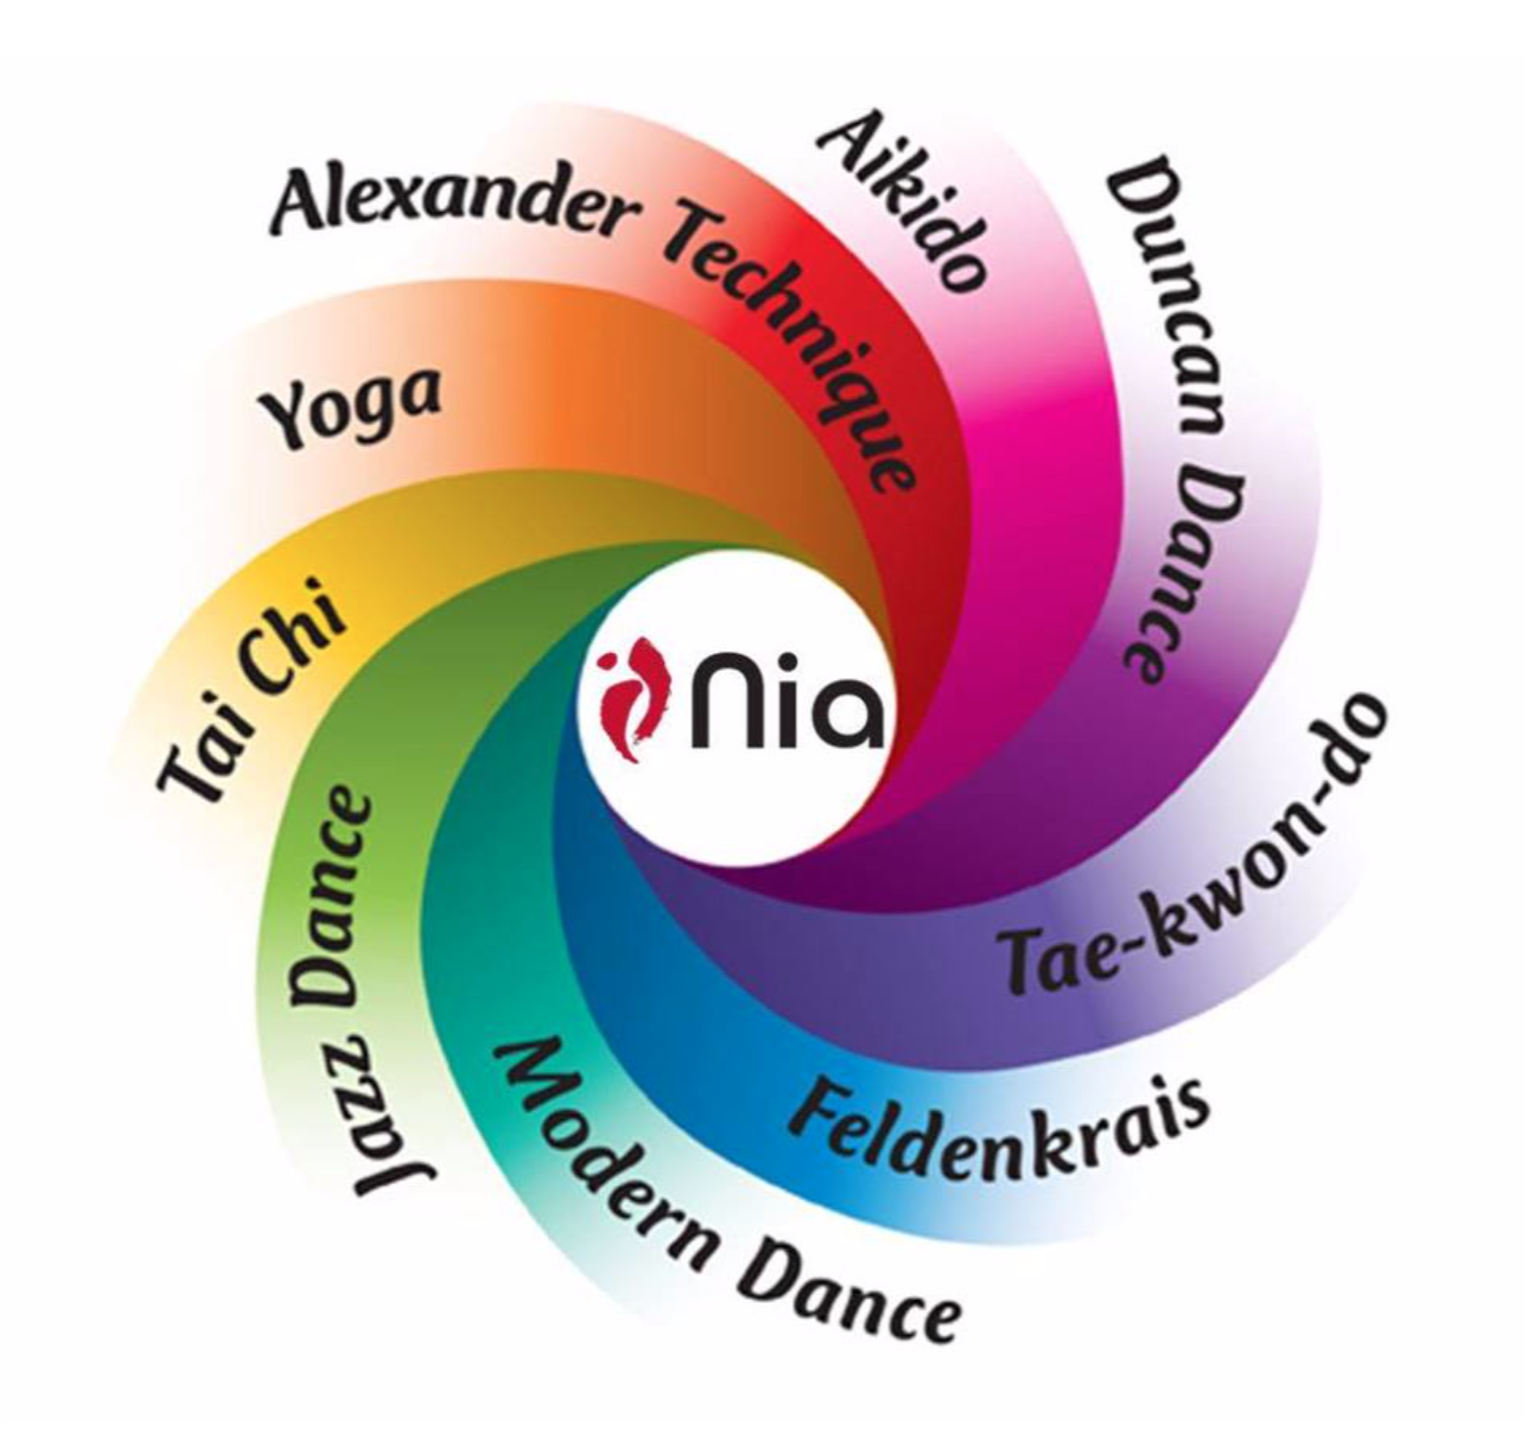 Nia draws equally from nine movement forms.